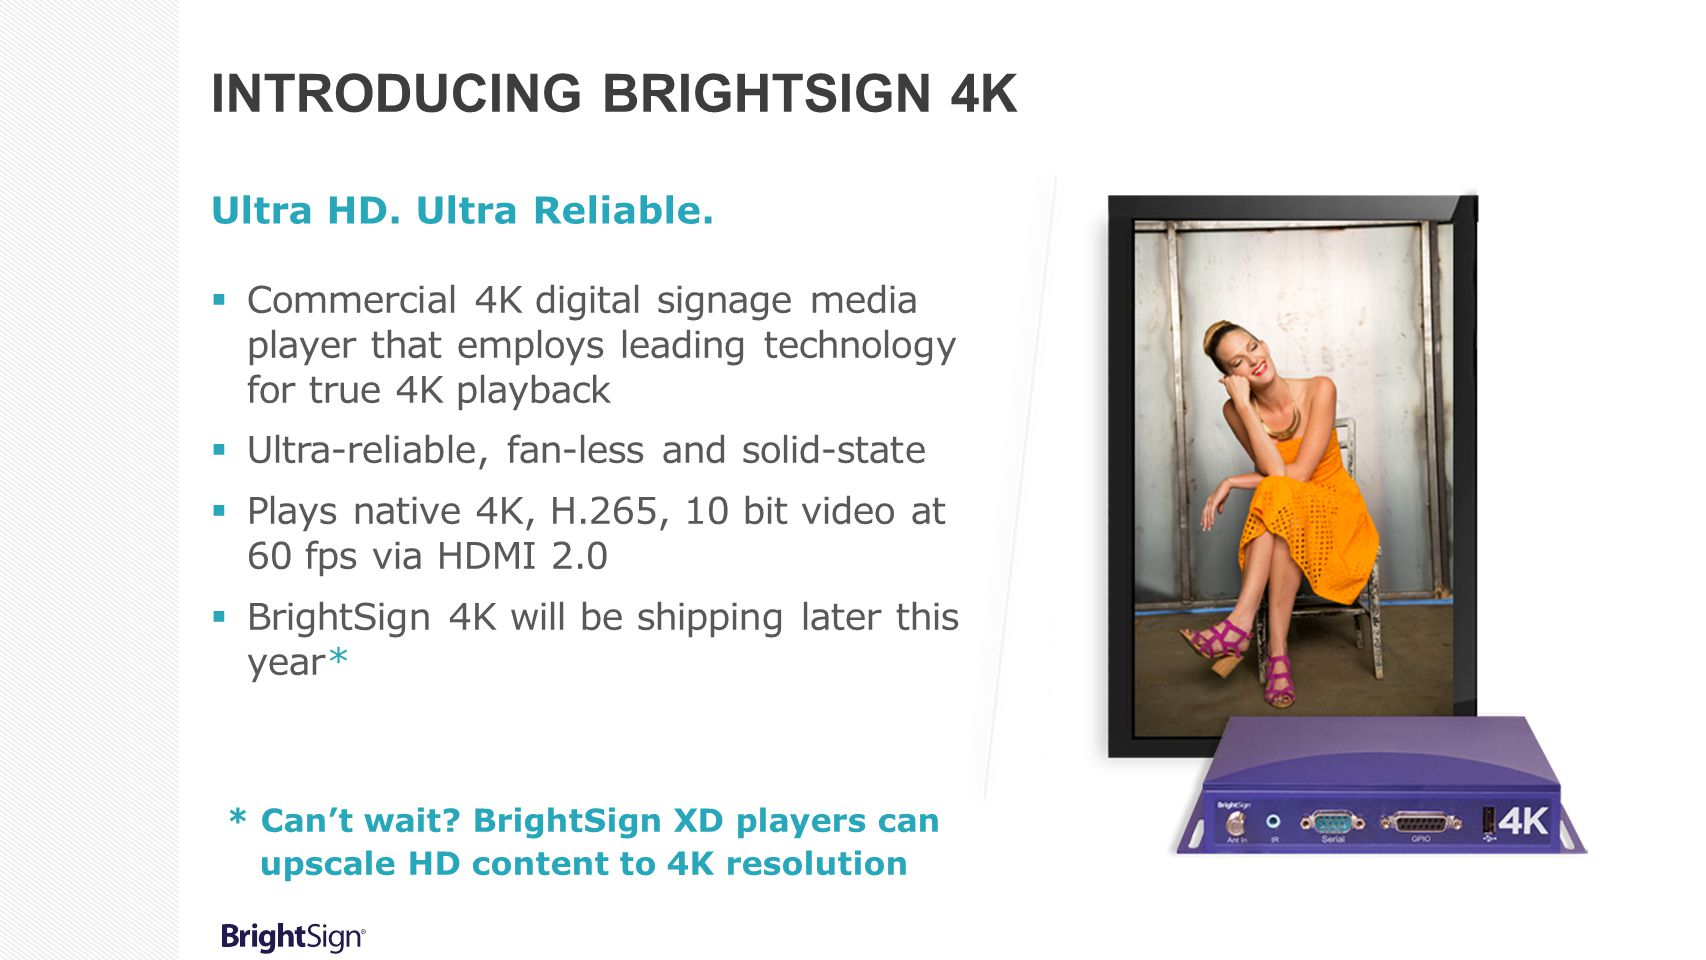 Introducing BrightSign 4K